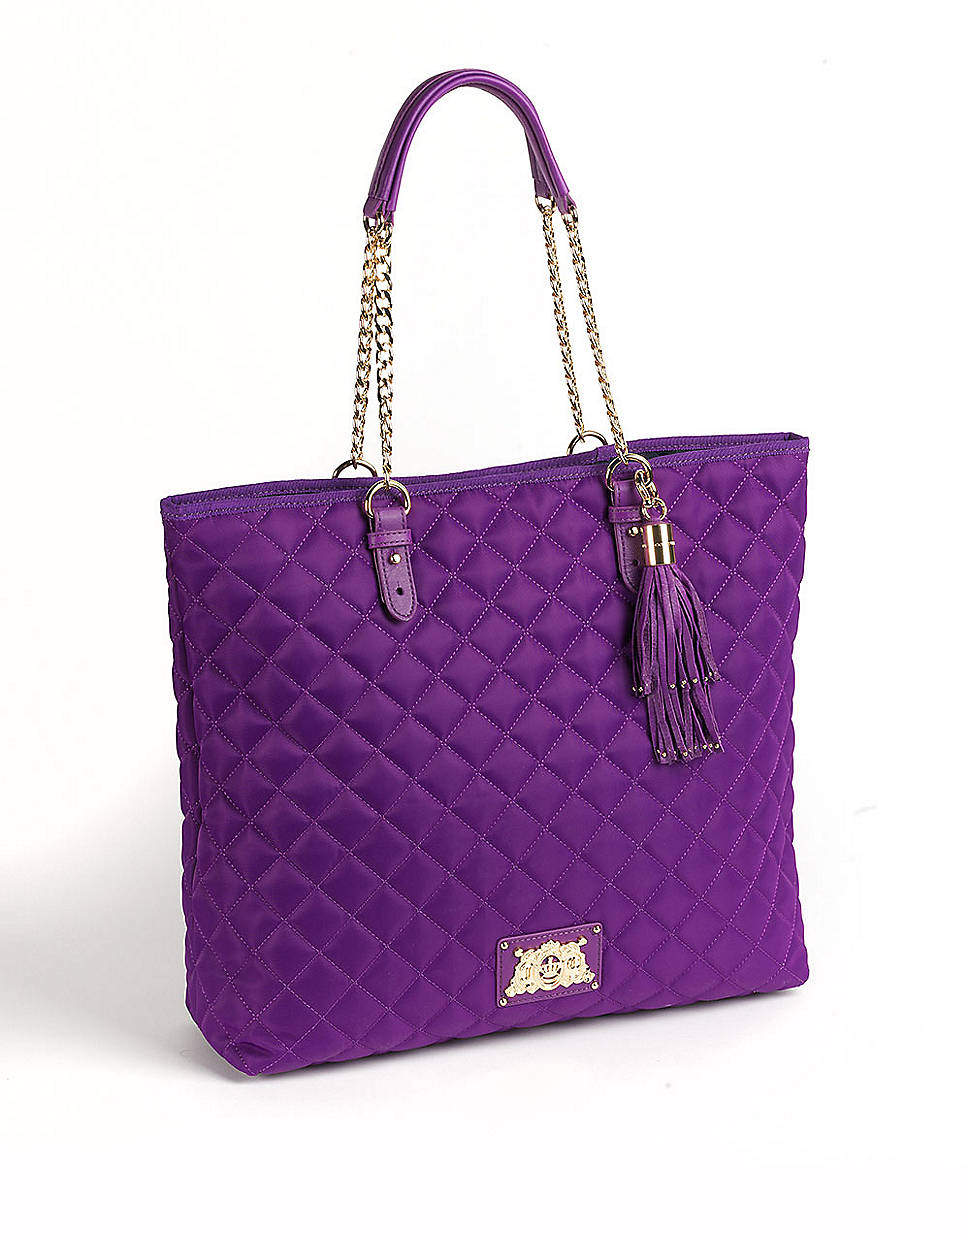 juicy couture quilted tote bag in purple lyst. Black Bedroom Furniture Sets. Home Design Ideas